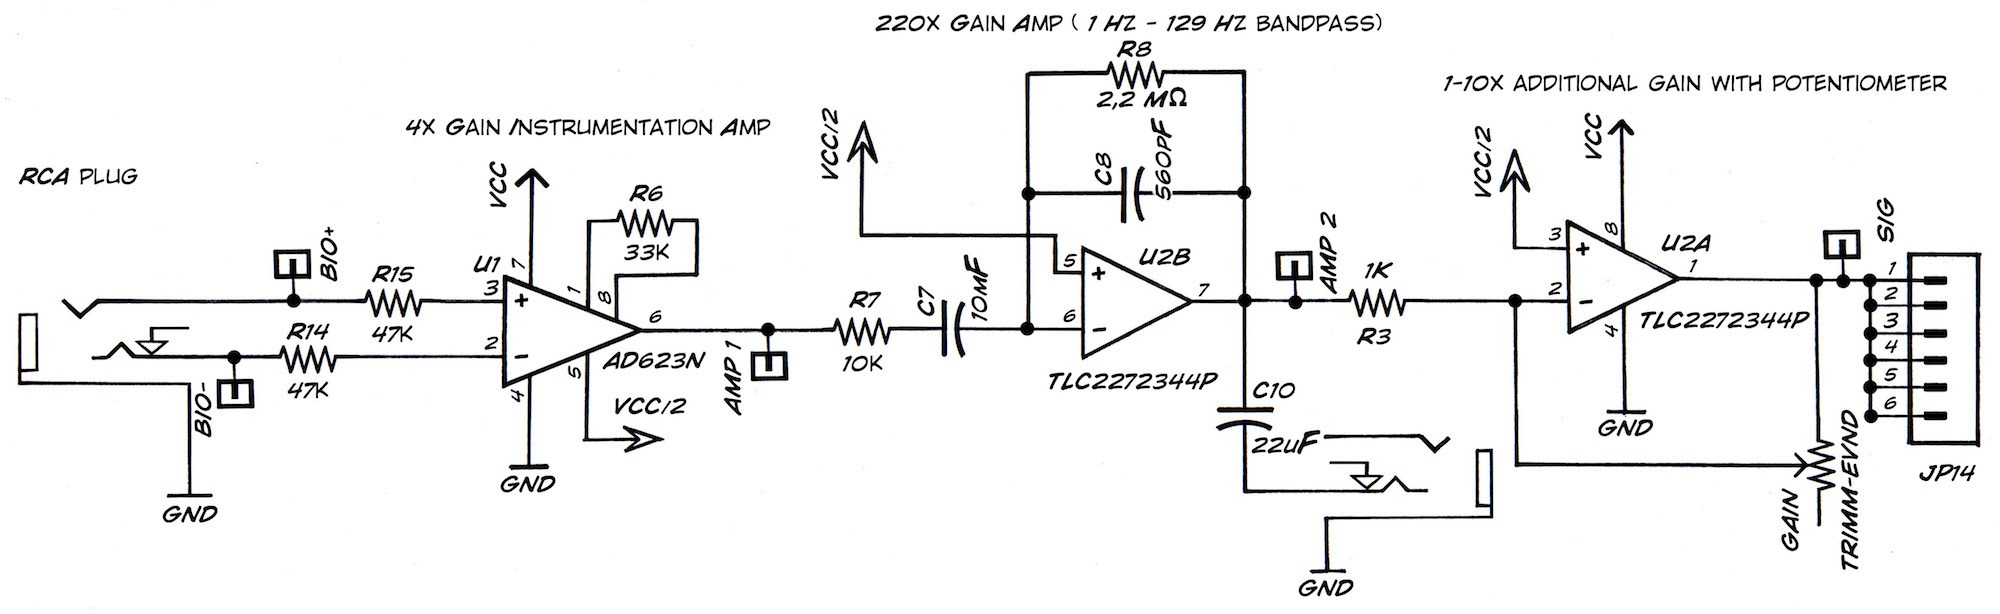 [SCHEMATICS_48IS]  RS_9166] Delco Model 15071234 Radio Wiring Download Diagram | Delco Radio Wiring Model 28198497 |  | Obenz Ndine Cana Inrebe Mohammedshrine Librar Wiring 101